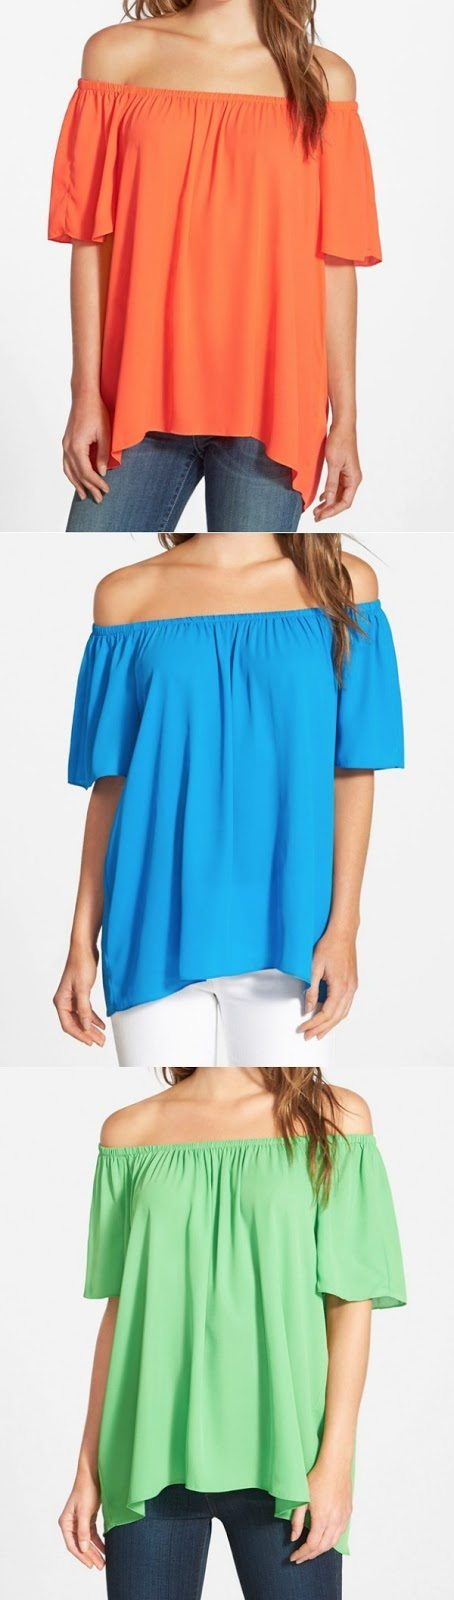 Summer Fashion - Vince Camuto Off-Shoulder High/Low Blouse